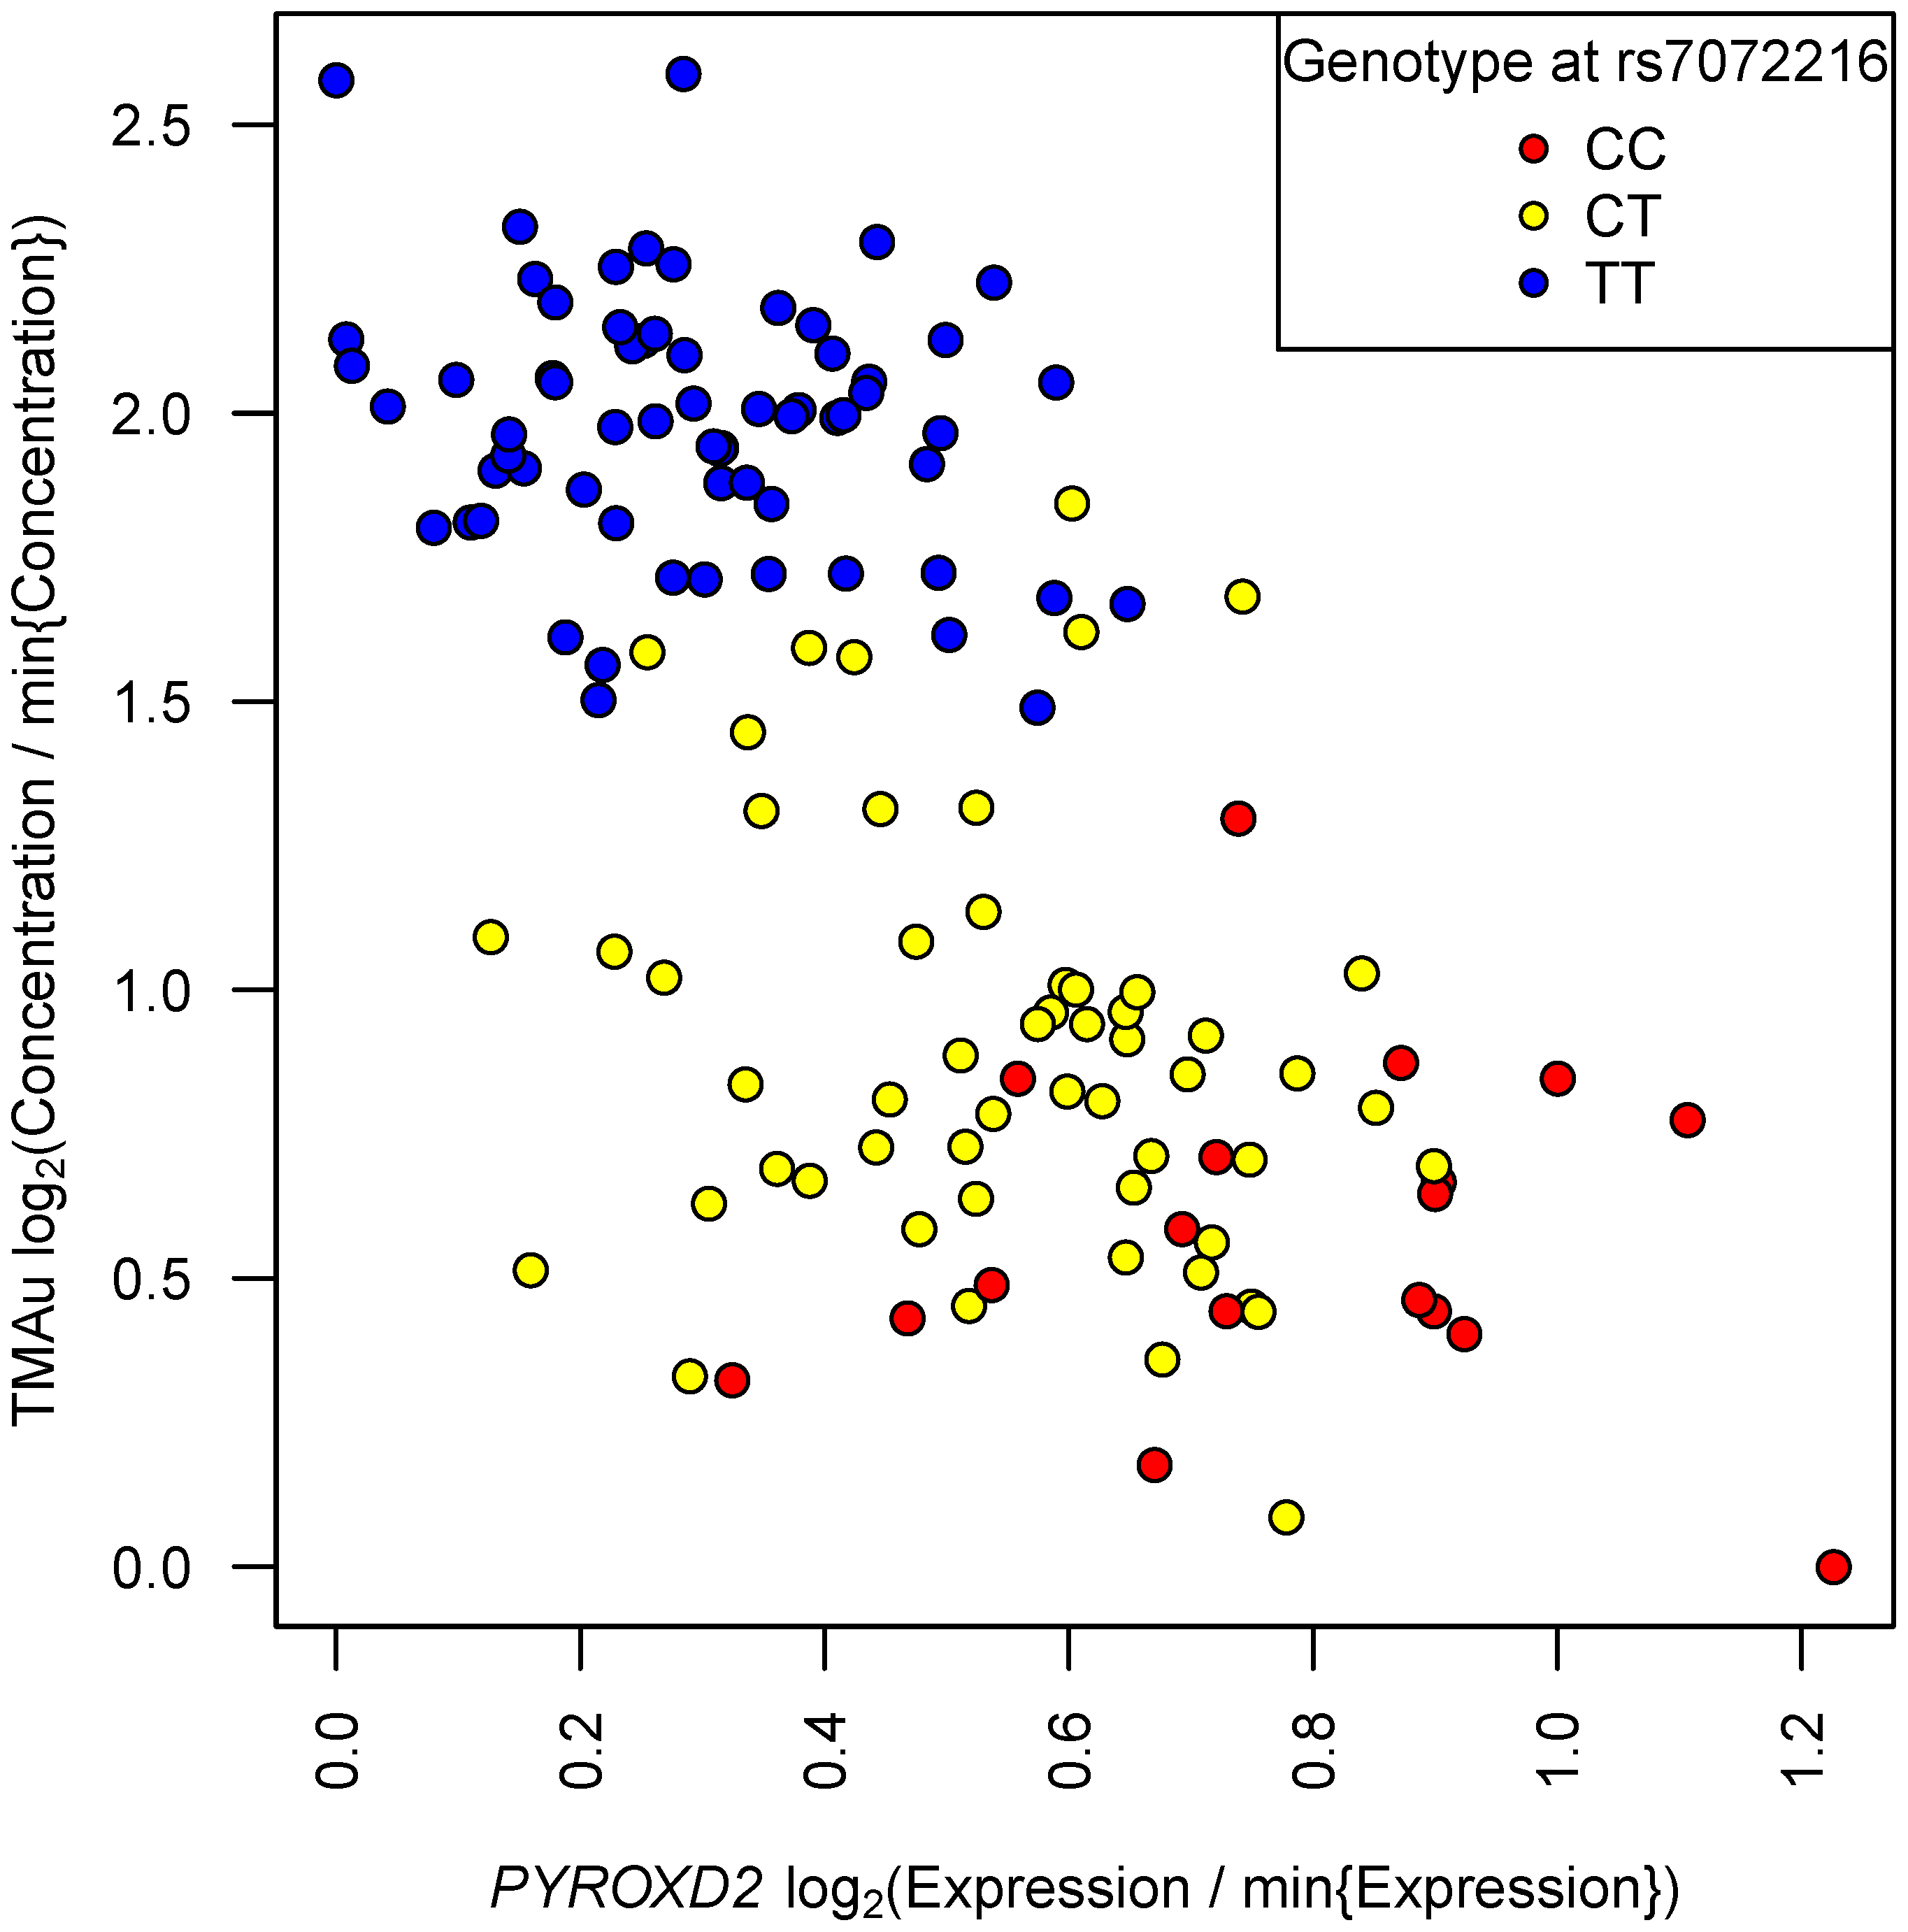 TMAu's mQTL effect may be mediated by variation in mRNA transcription at <i>PYROXD2</i>.